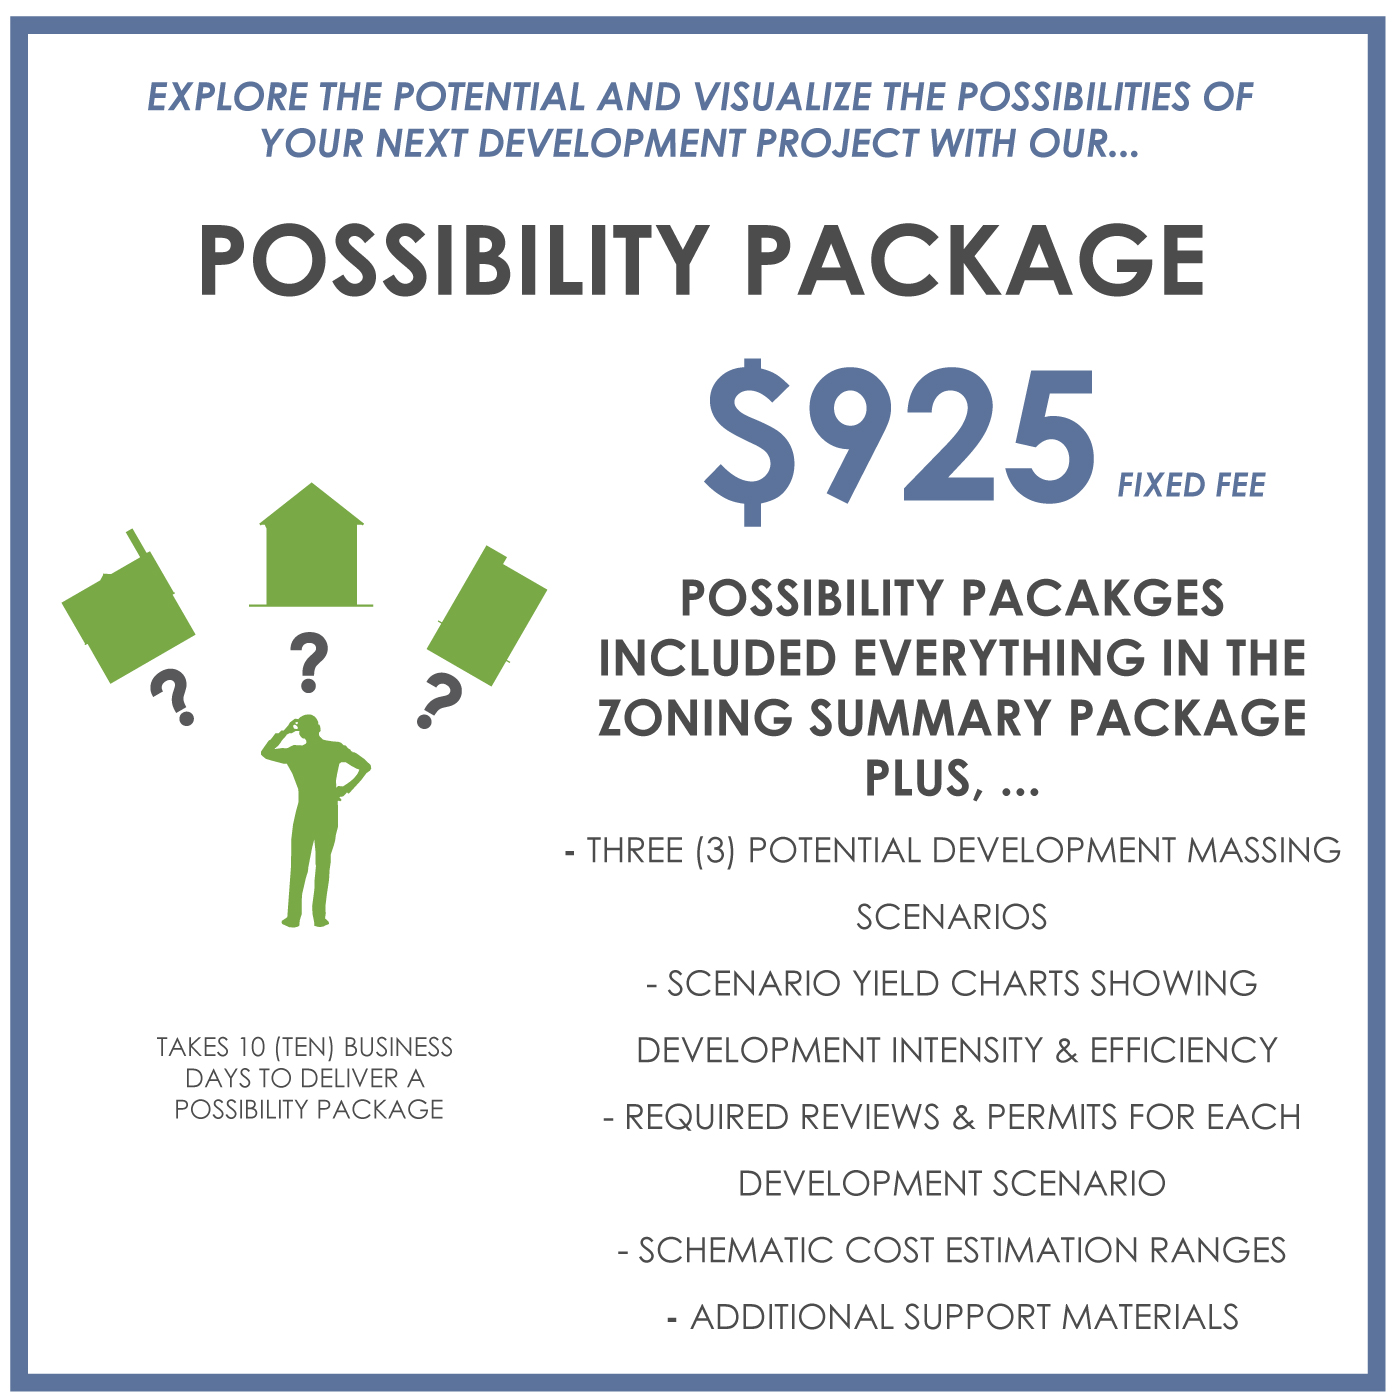 FabrickDesign_PossibilityPackage_Pricing_THUMB.jpg